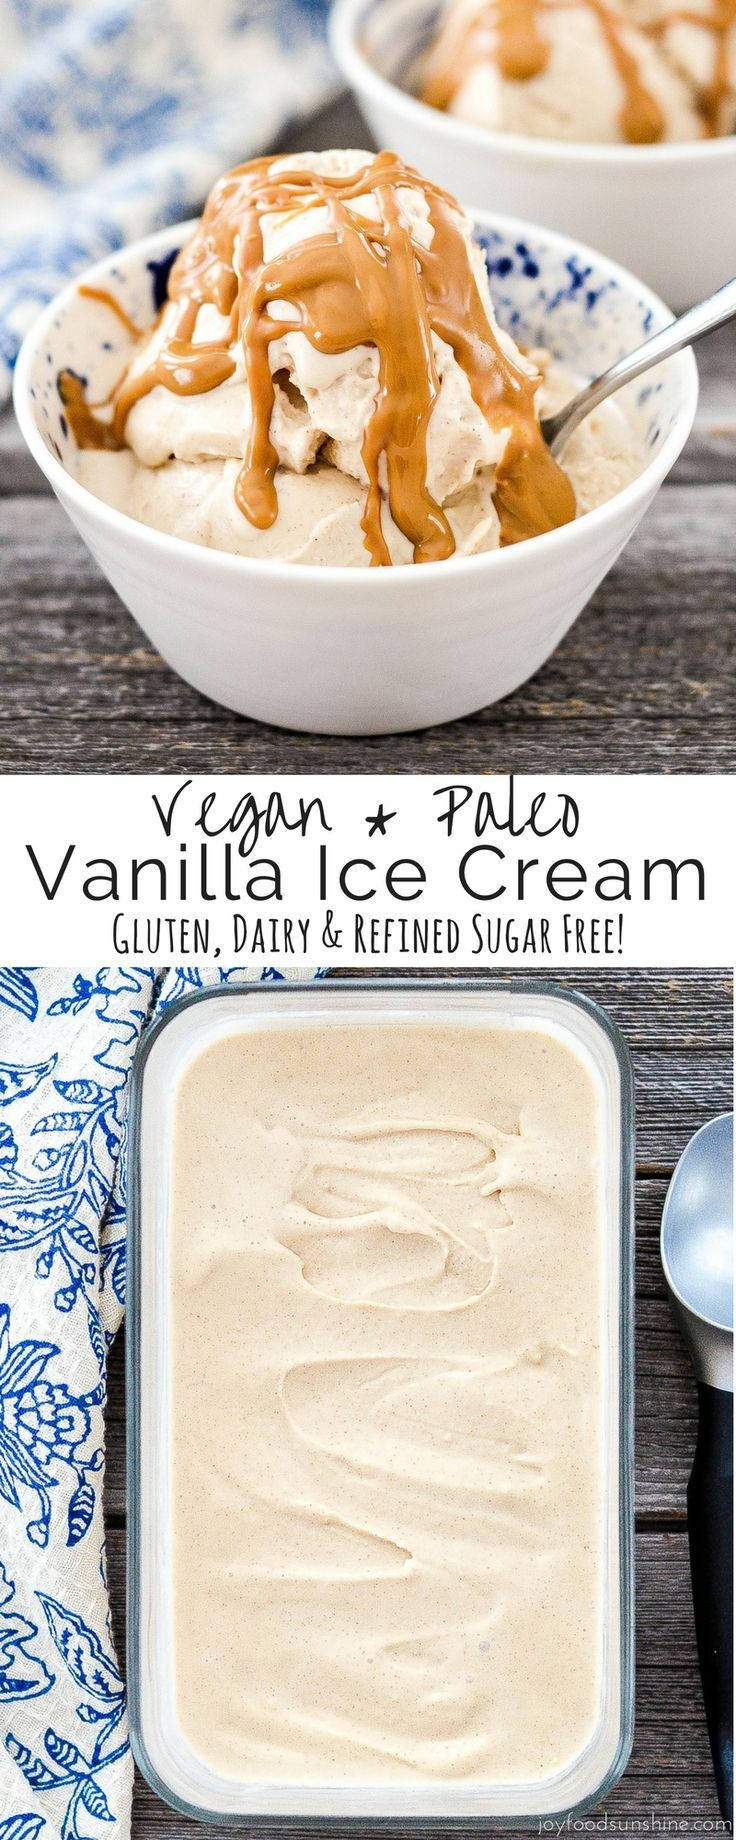 Vegan & Paleo Vanilla Ice Cream! Made with only 5 ingredients! Gluten, dairy & refined sugar free! Made in the Vitamix!